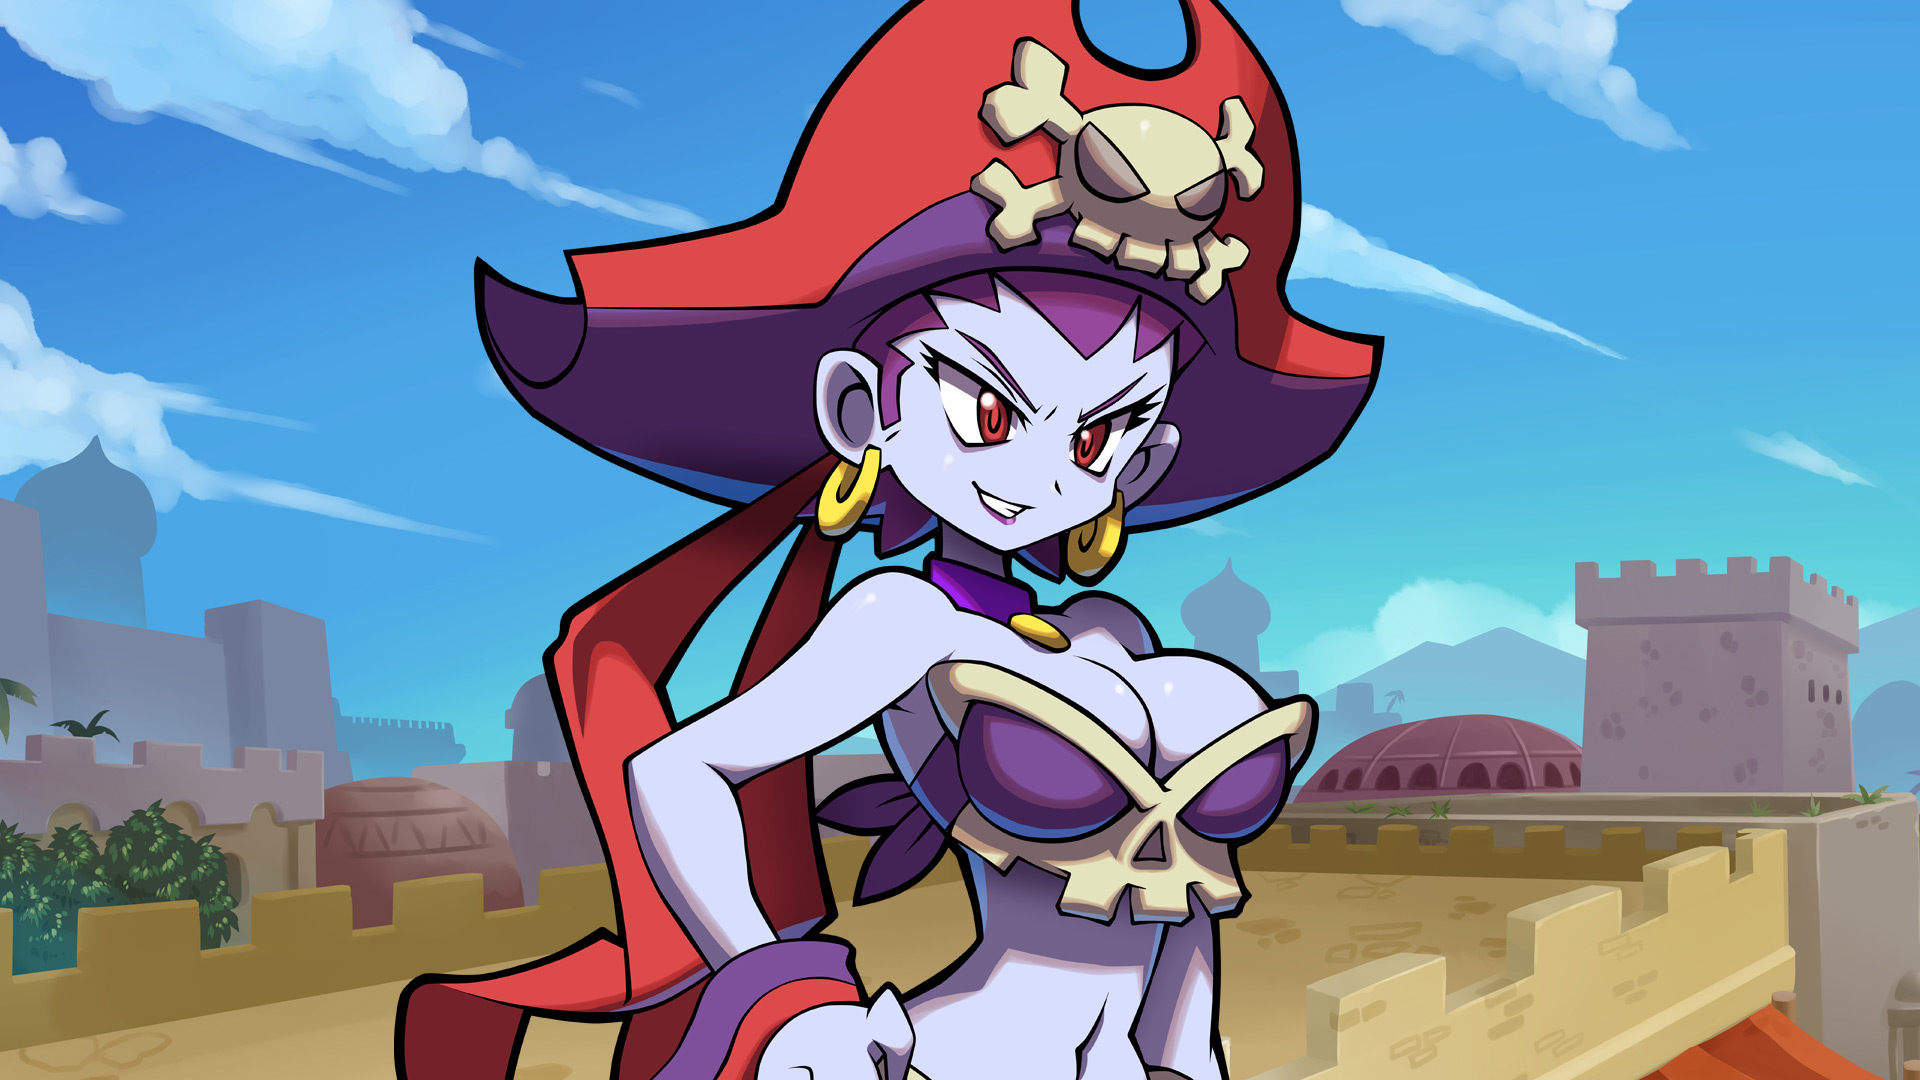 Risky boots x tinkerbat animation by lusty lizard